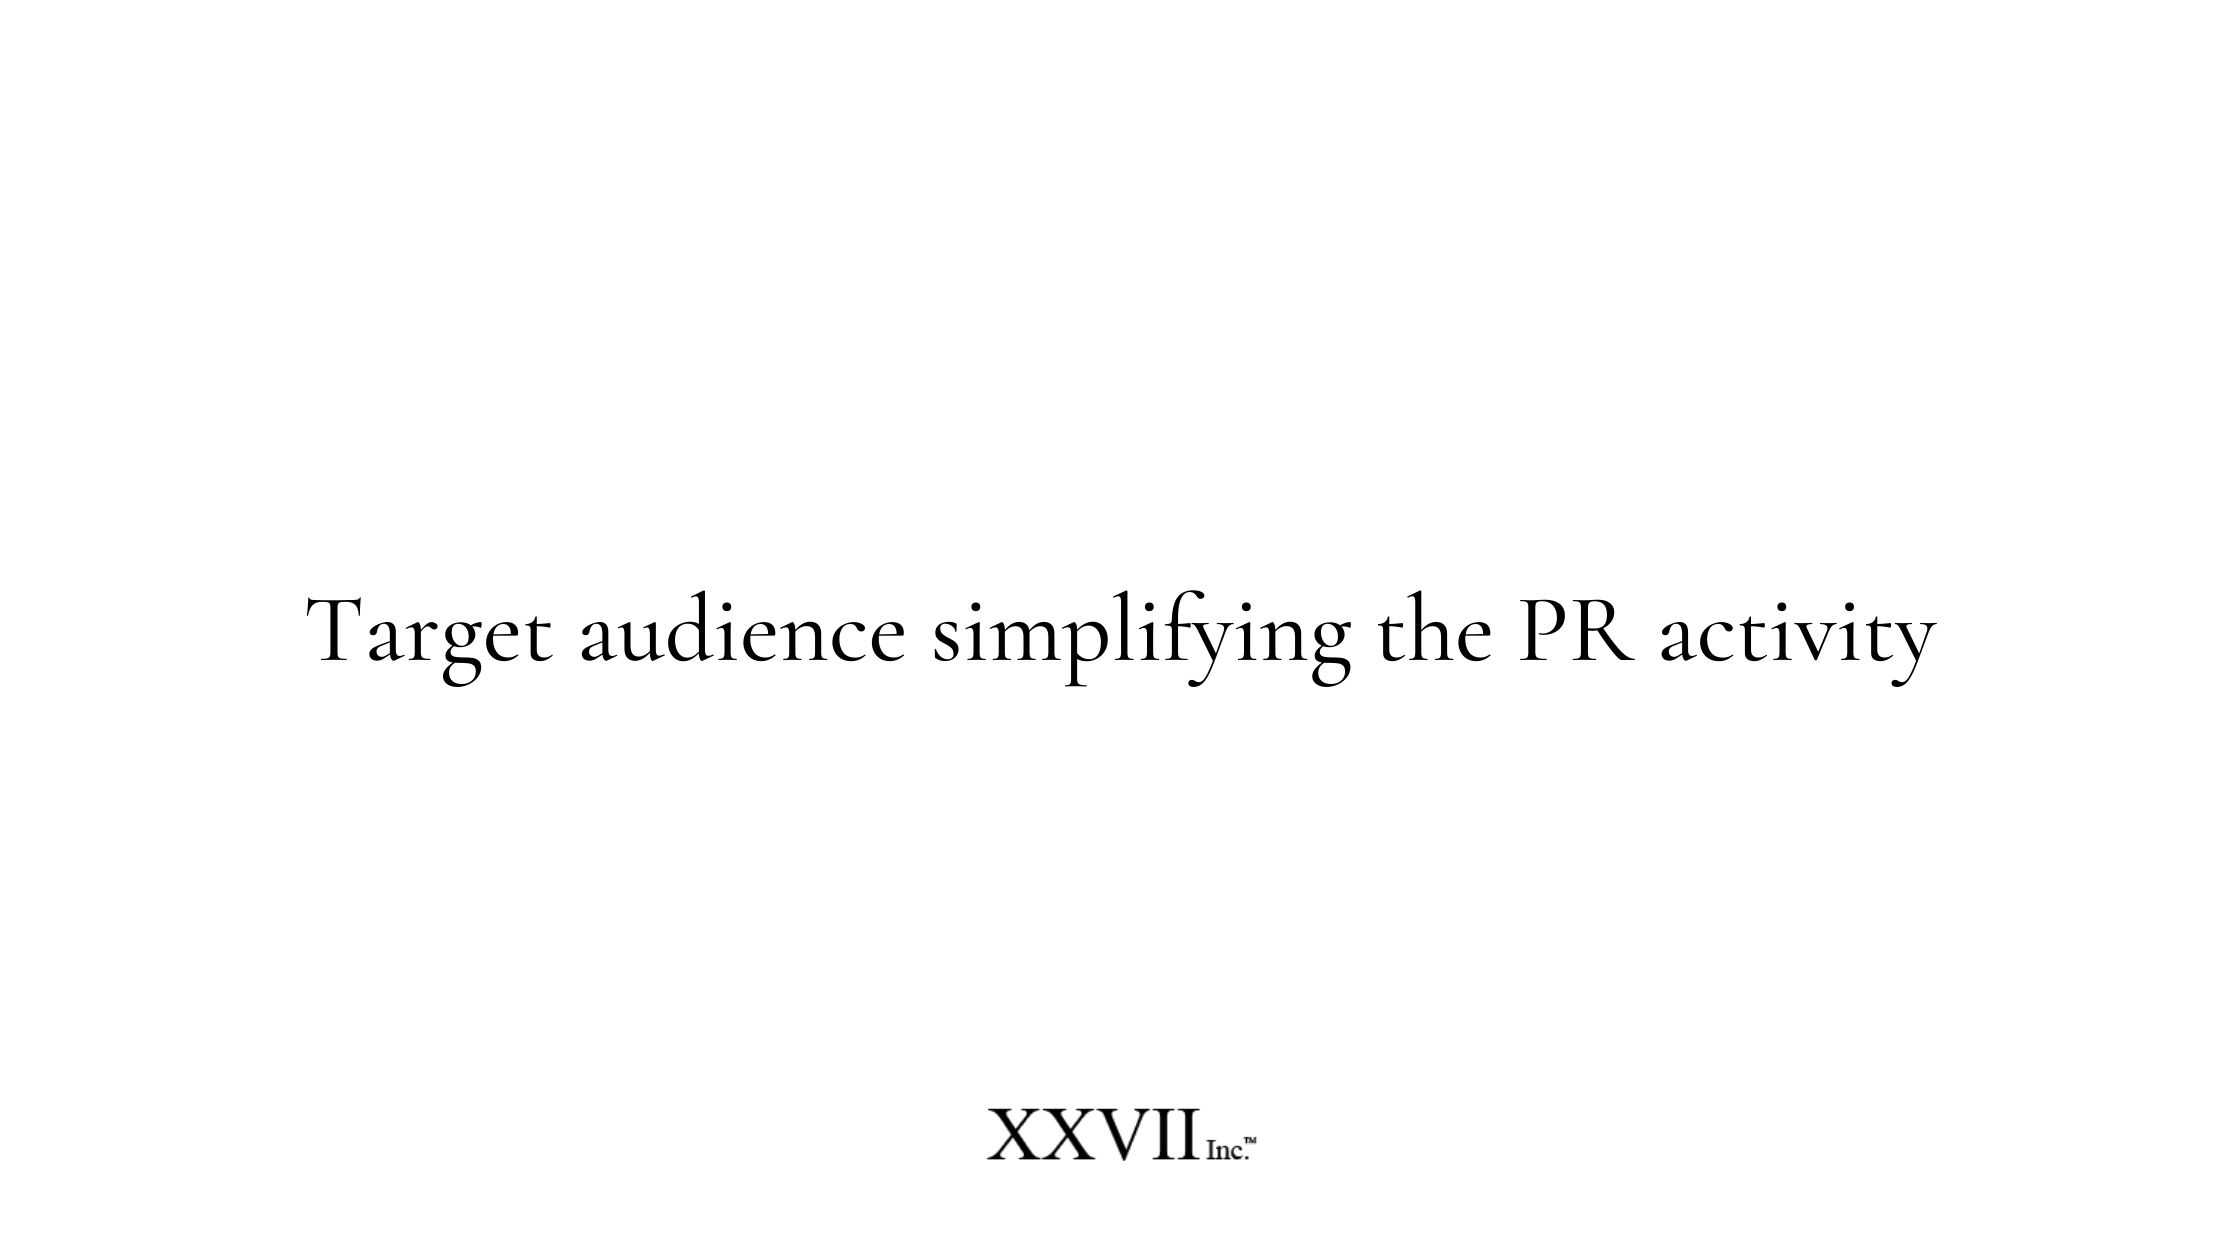 Target audience simplifying the PR activity